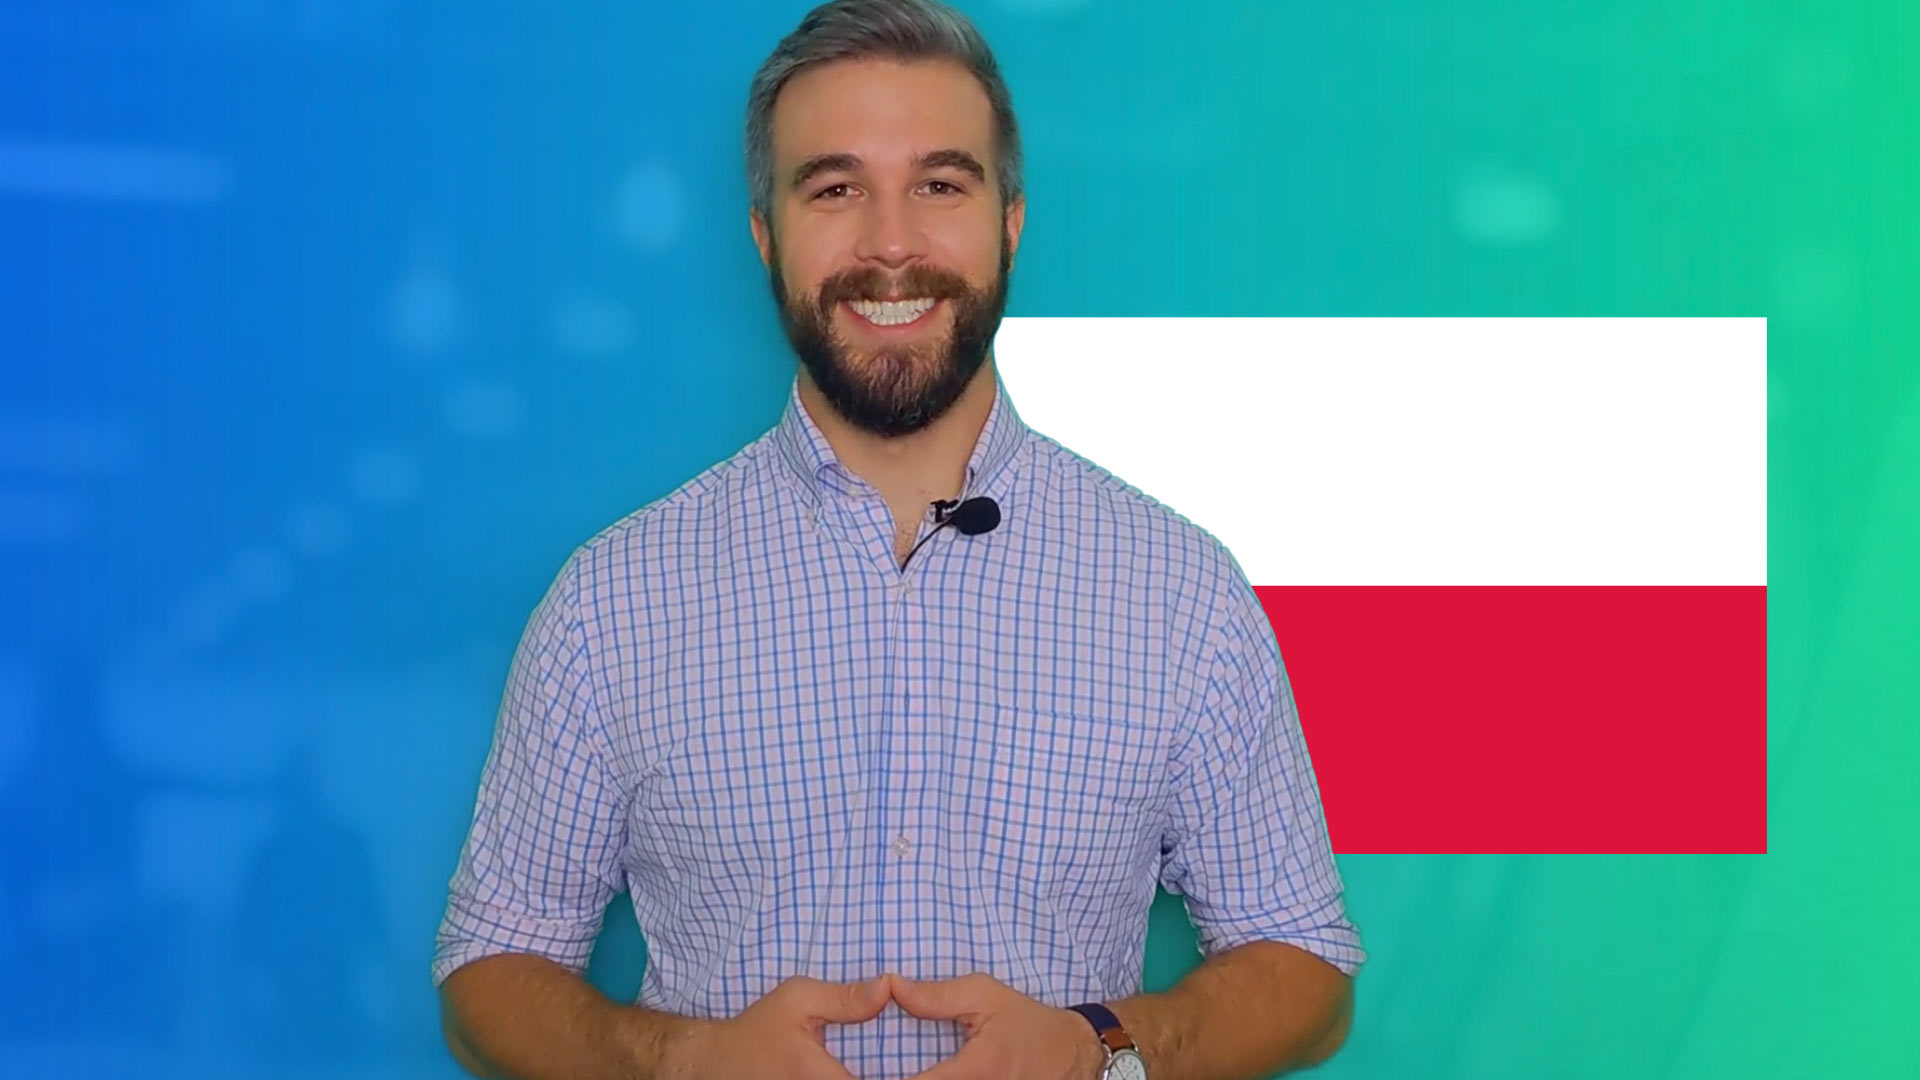 Establishing your business in Poland